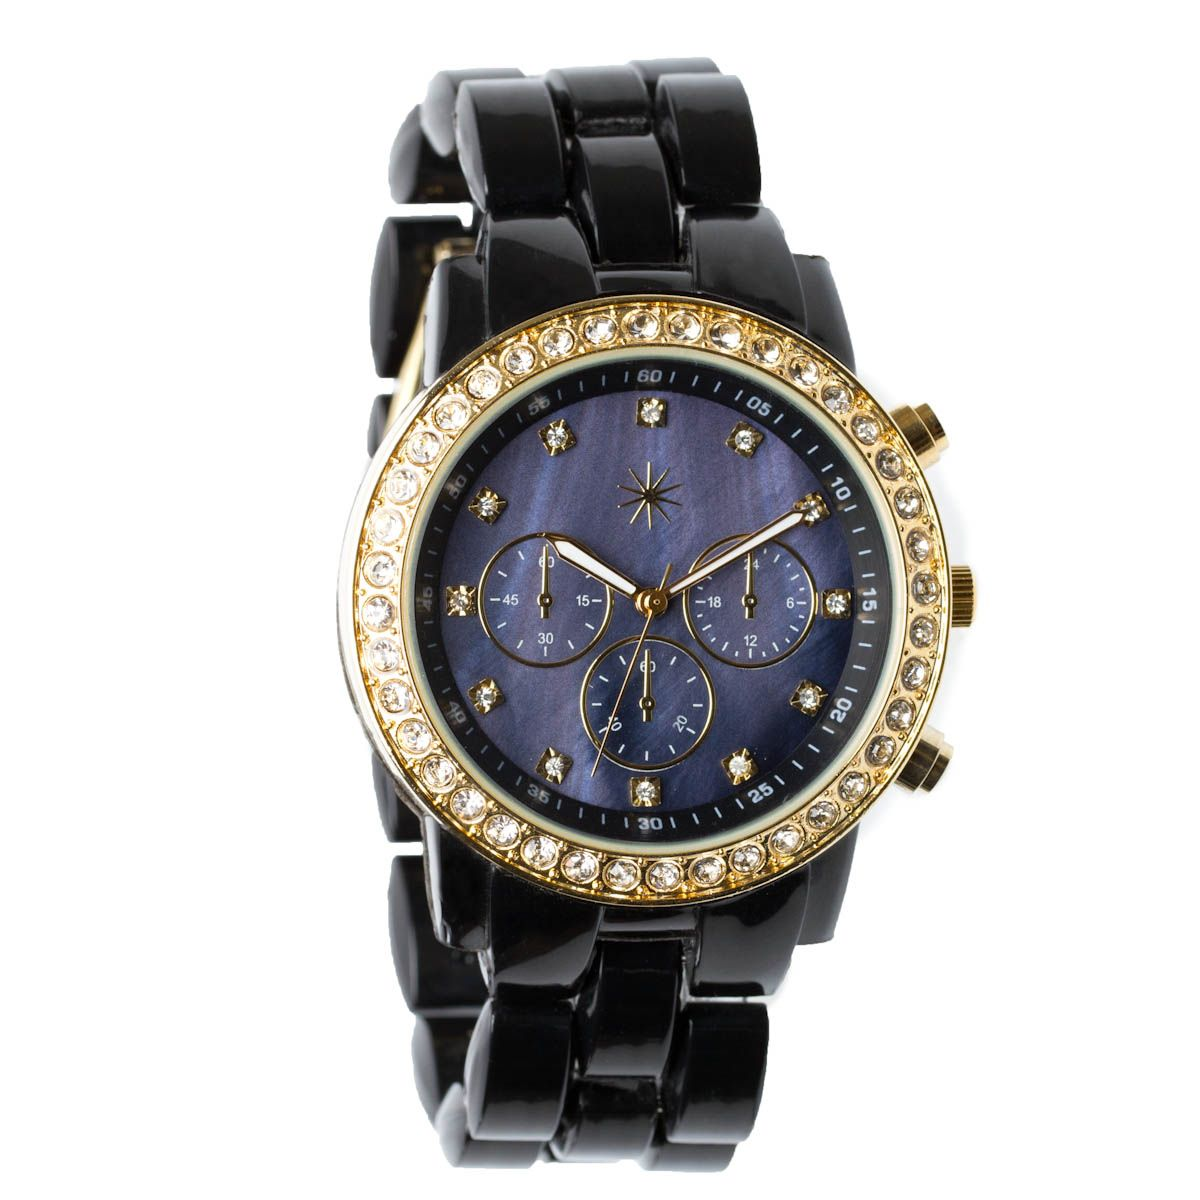 Stylish Seconds Watch in Black - $39.95